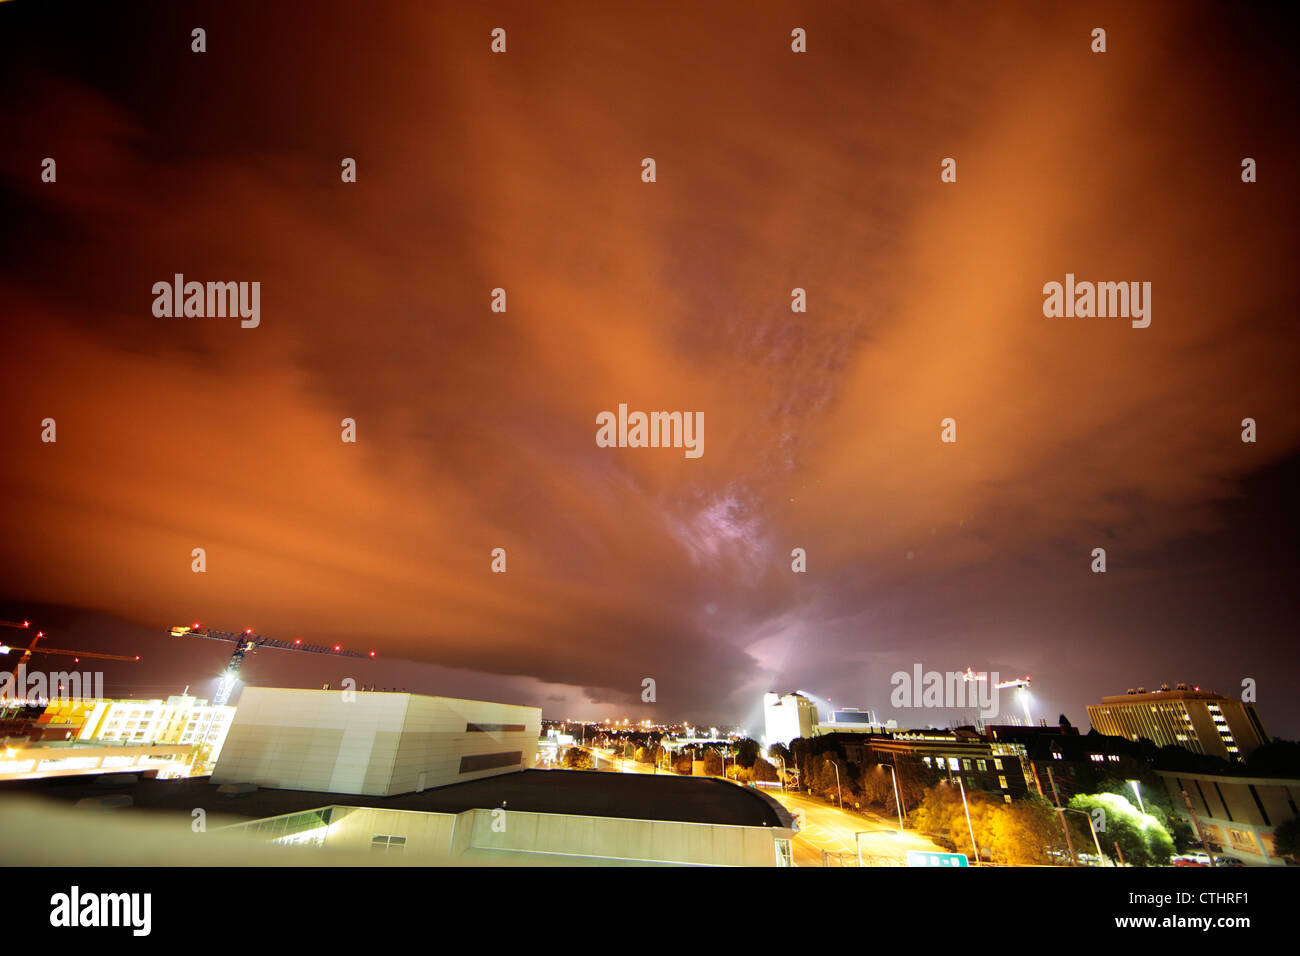 Shelf cloud, lit reddish orange by city lights, passes over a city as lightning strikes behind. - Stock Image